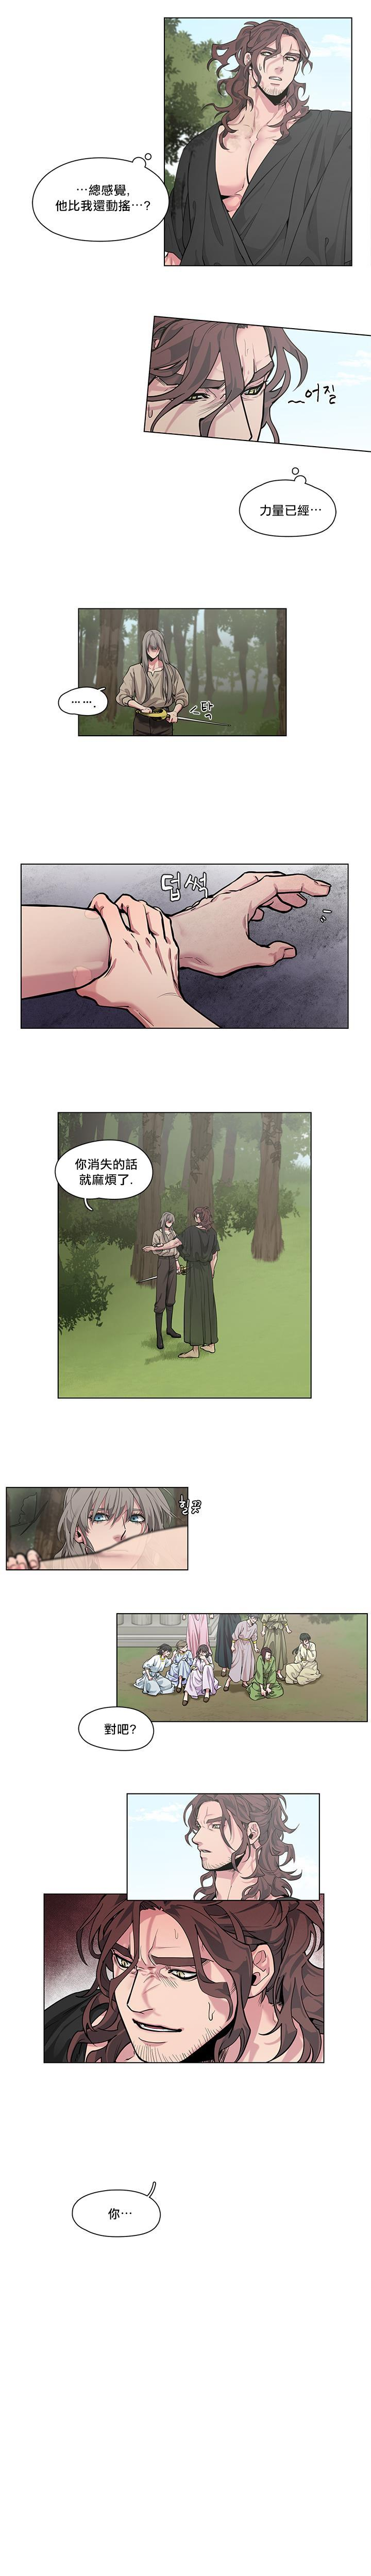 The Warrior and the Deity   勇者与山神 Ch. 2-6+加笔1+加笔2 37